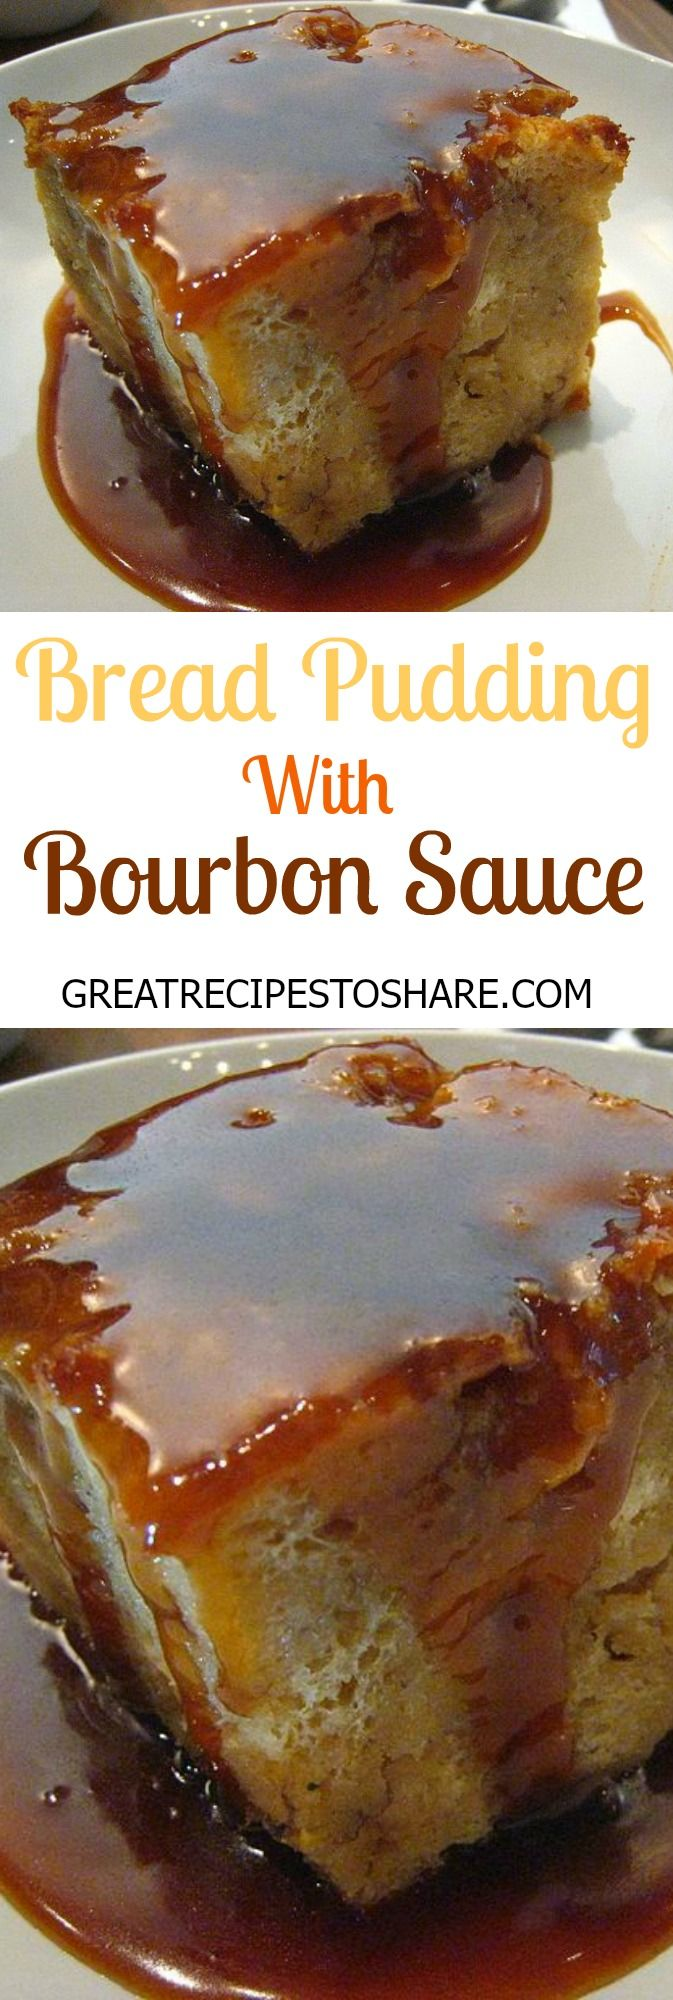 Bread Pudding With Bourbon Sauce - The Southern Bread Pudding is delicious. Be sure to serve the bourbon sauce while it is slightly warm.